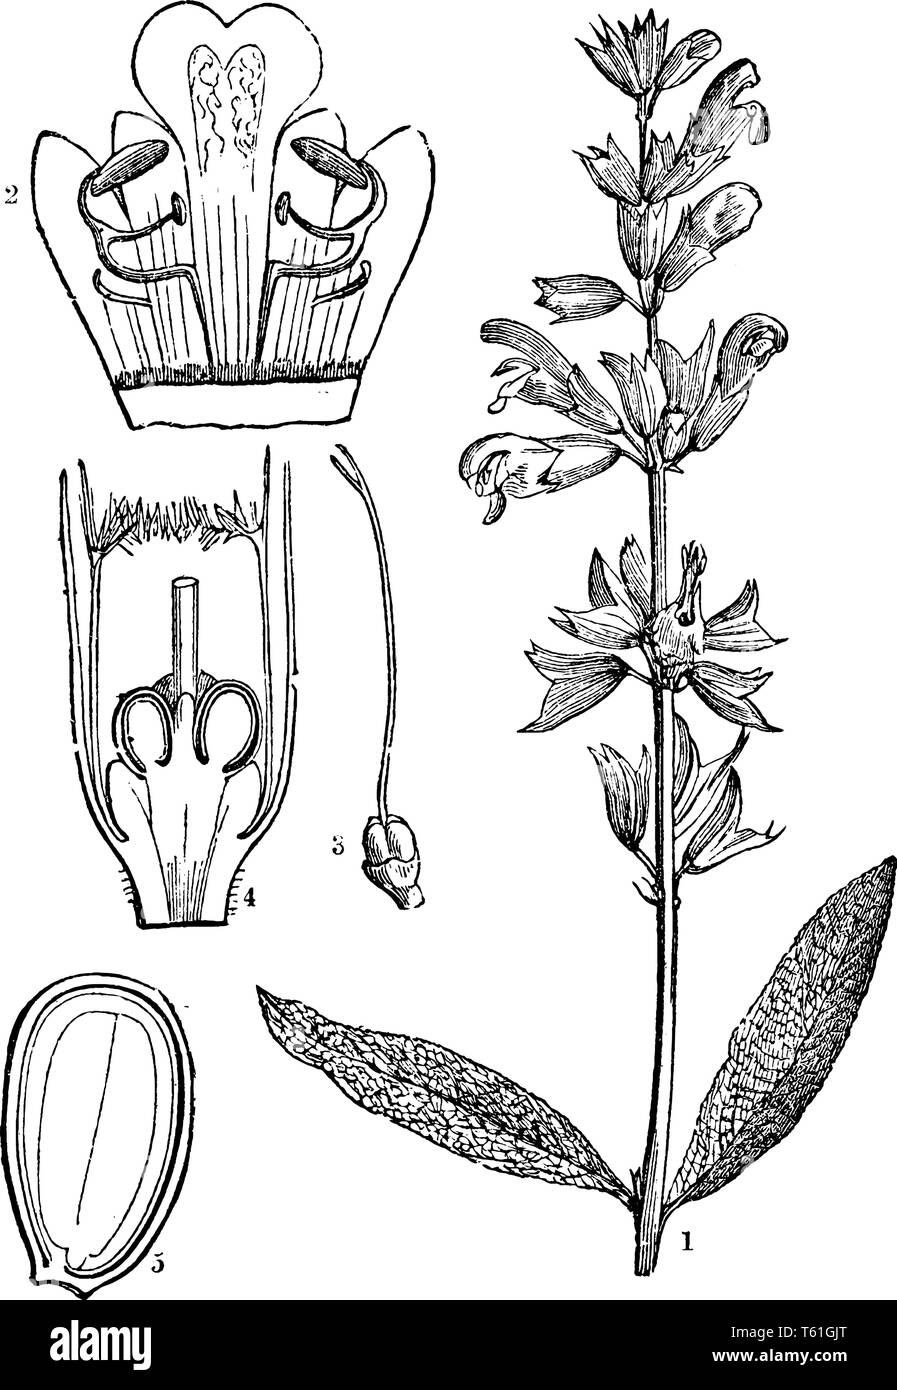 A picture describing the various parts of Common Sage or Salva officinalis. Such as its corolla opens, the pistil and the lower part of the flower ope Stock Vector